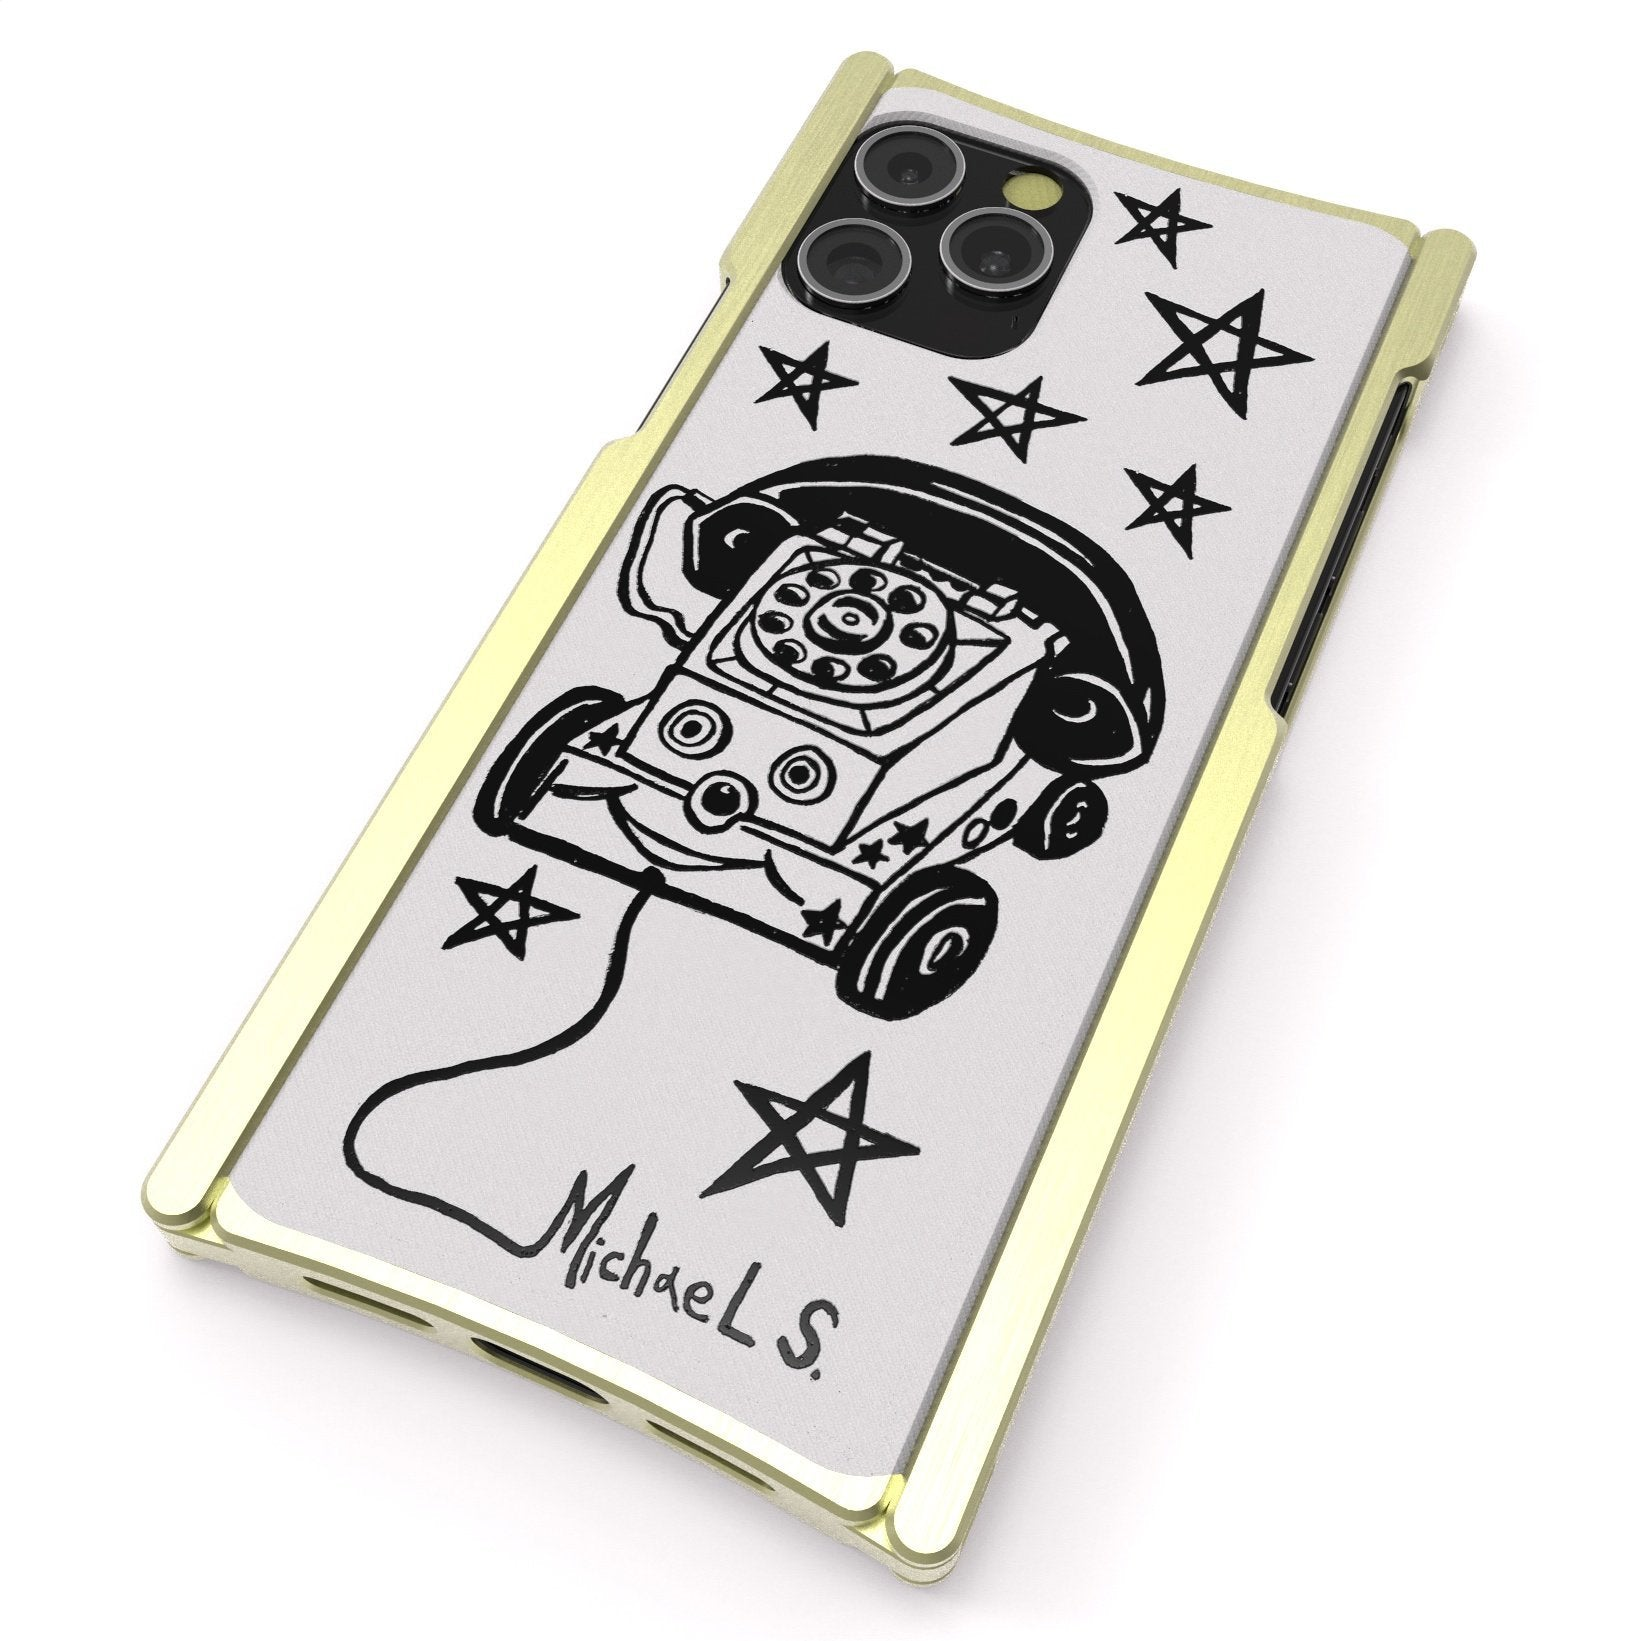 iPhone 12 Case, Michael Toy Phone Europa 12 Pro Max Brass and White G10